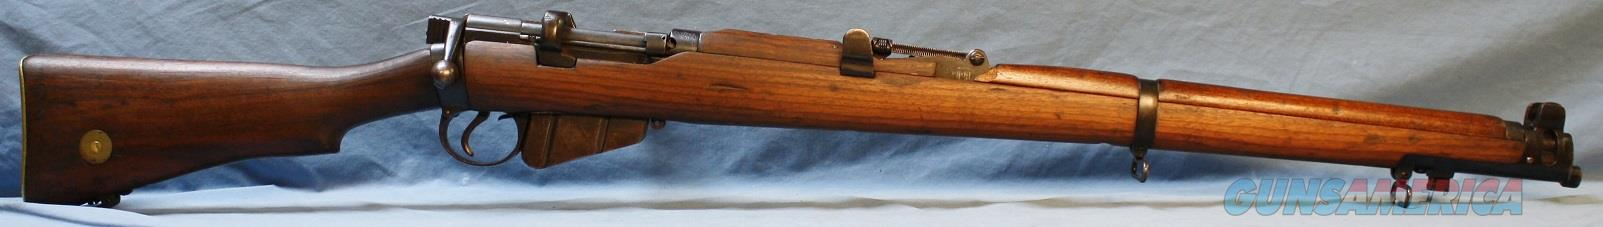 Enfield No.1 MK.III* Bolt Action Rifle (made in 1918)  .303 British   Guns > Rifles > Military Misc. Rifles Non-US > Other